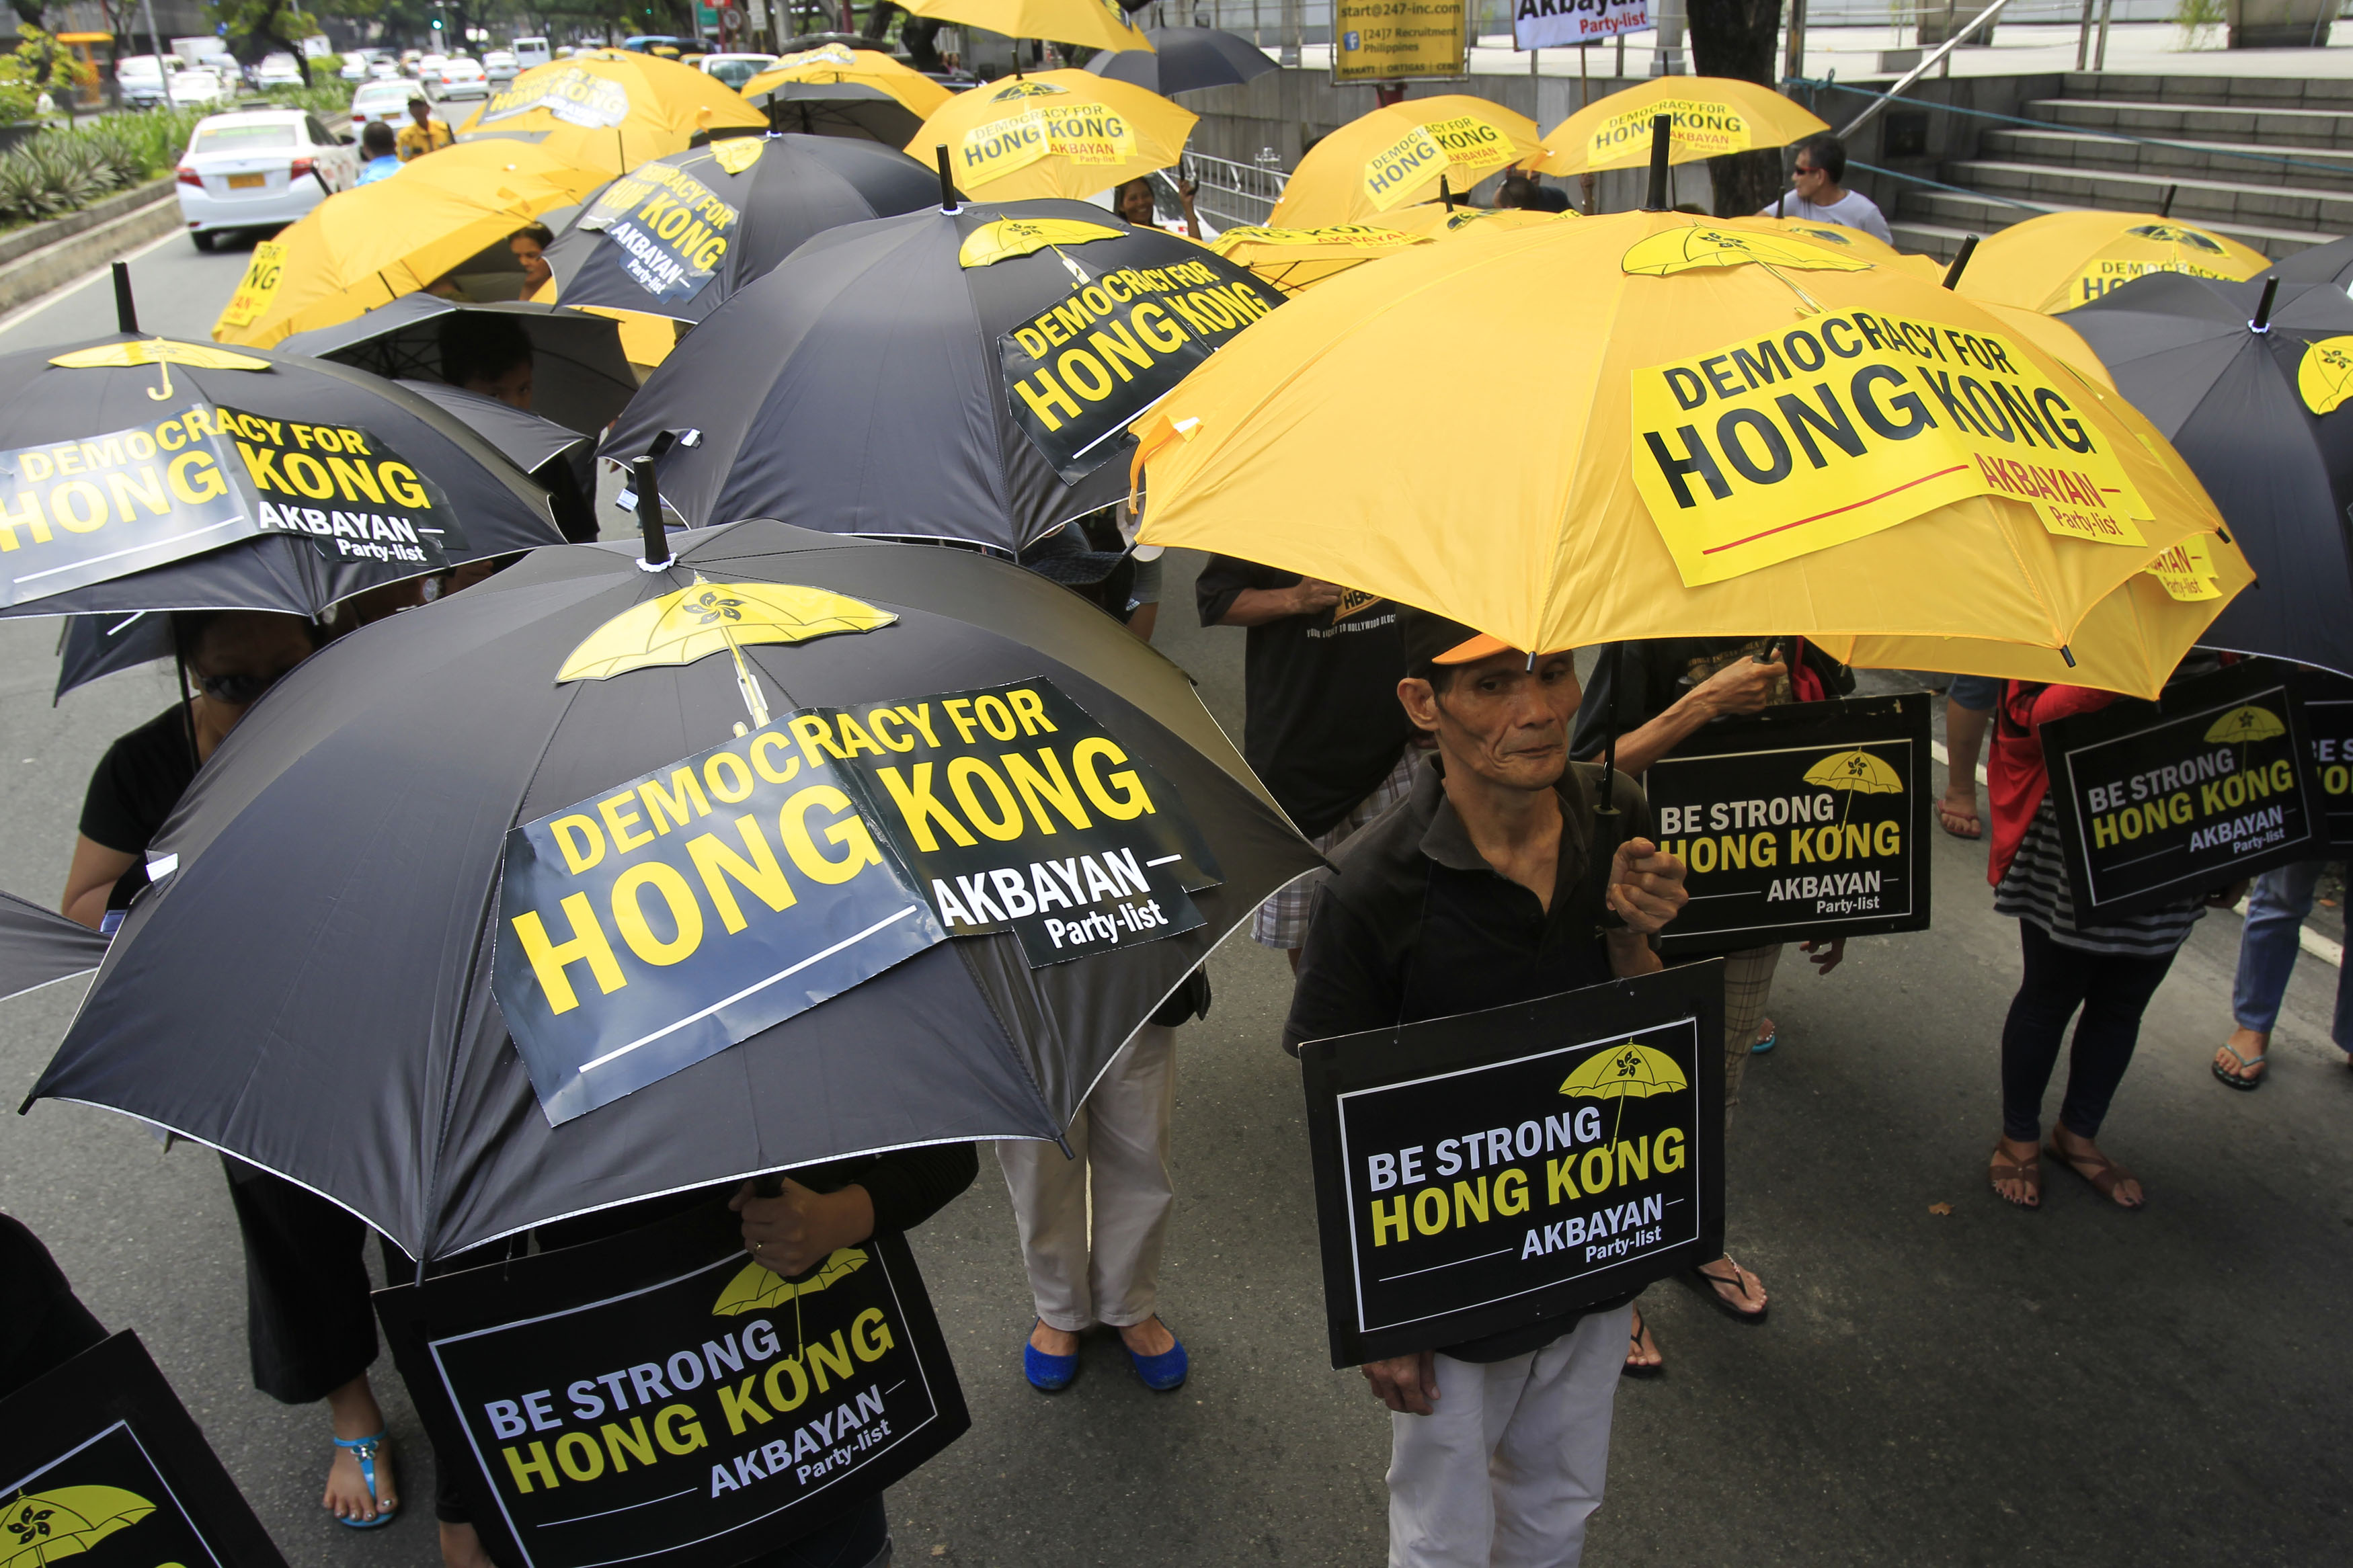 Activists in support of the pro-democracy demonstrations in Hong Kong protest in front of the Chinese Consular office in Makati city, metro Manila, Oct. 2, 2014.